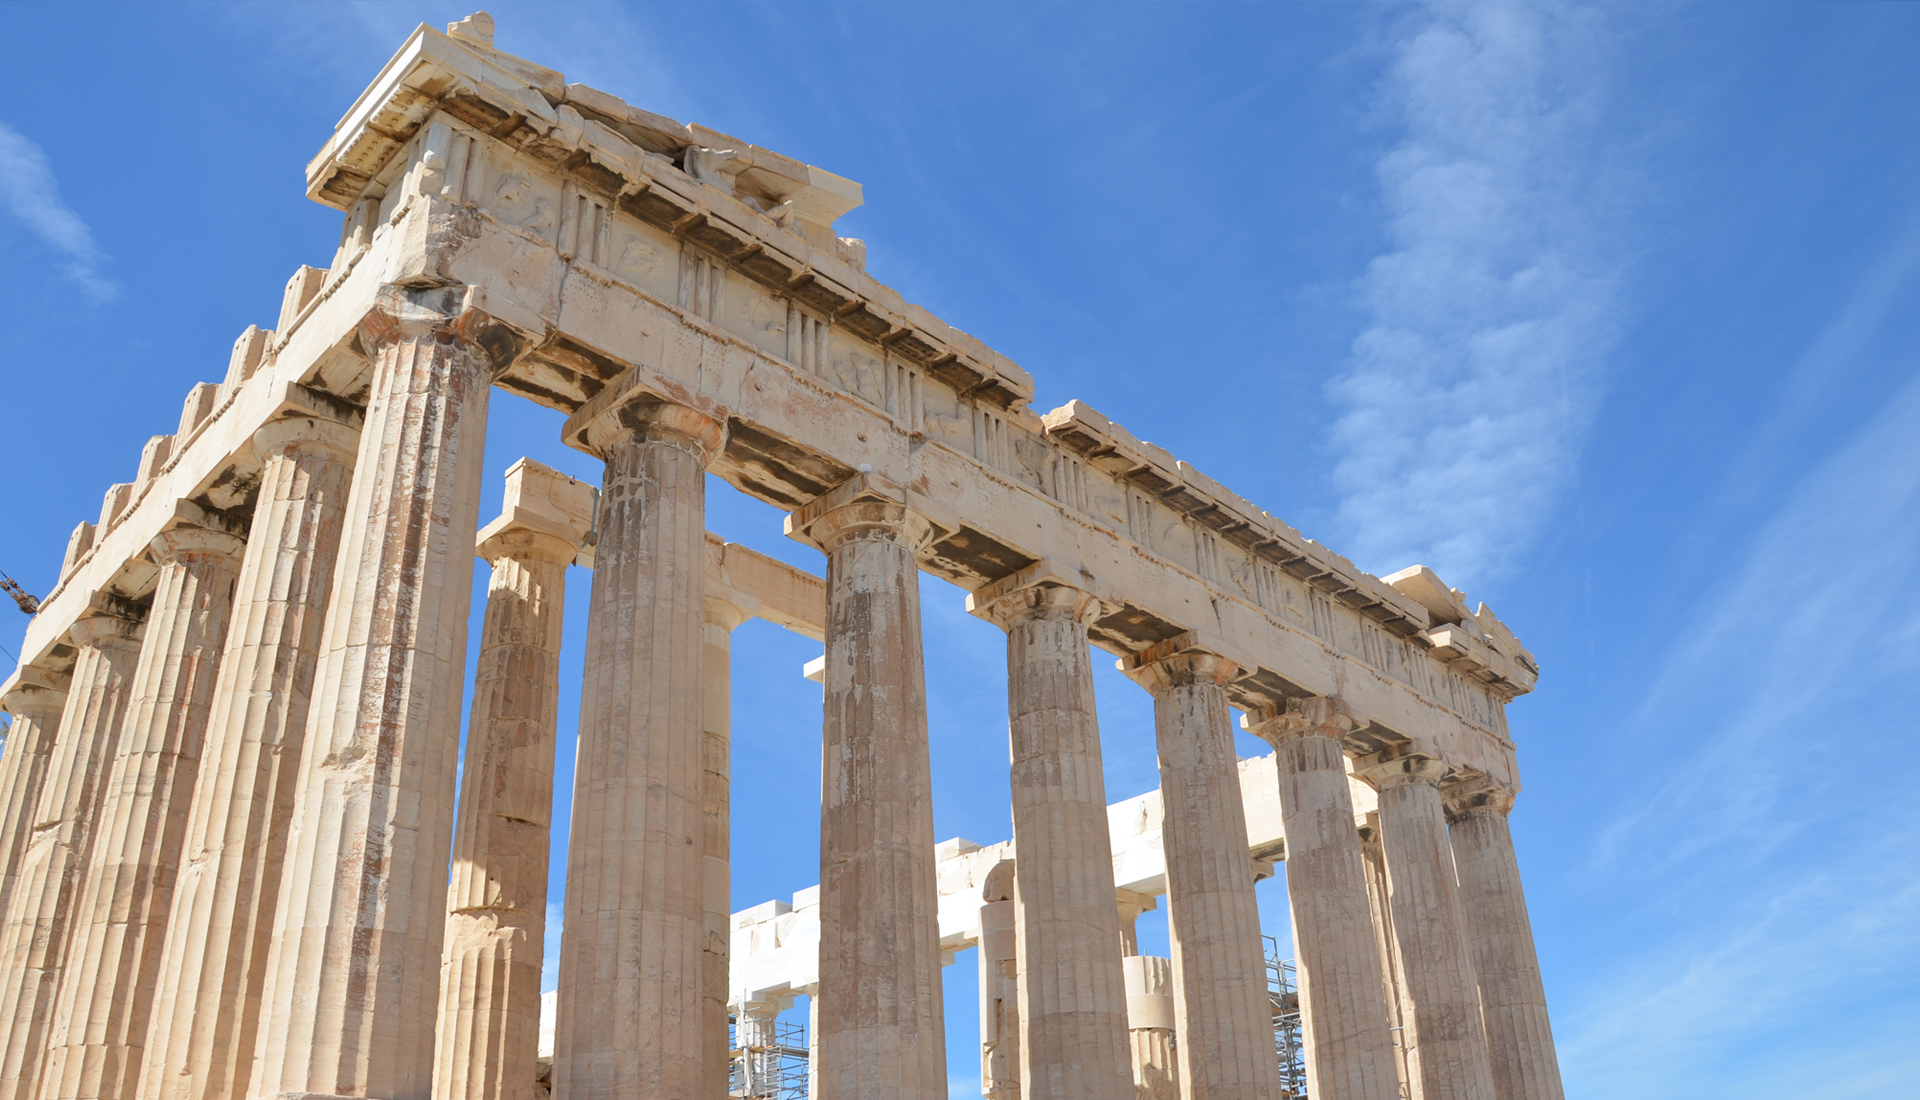 <h2>Walking tours in Athens ...</h2>